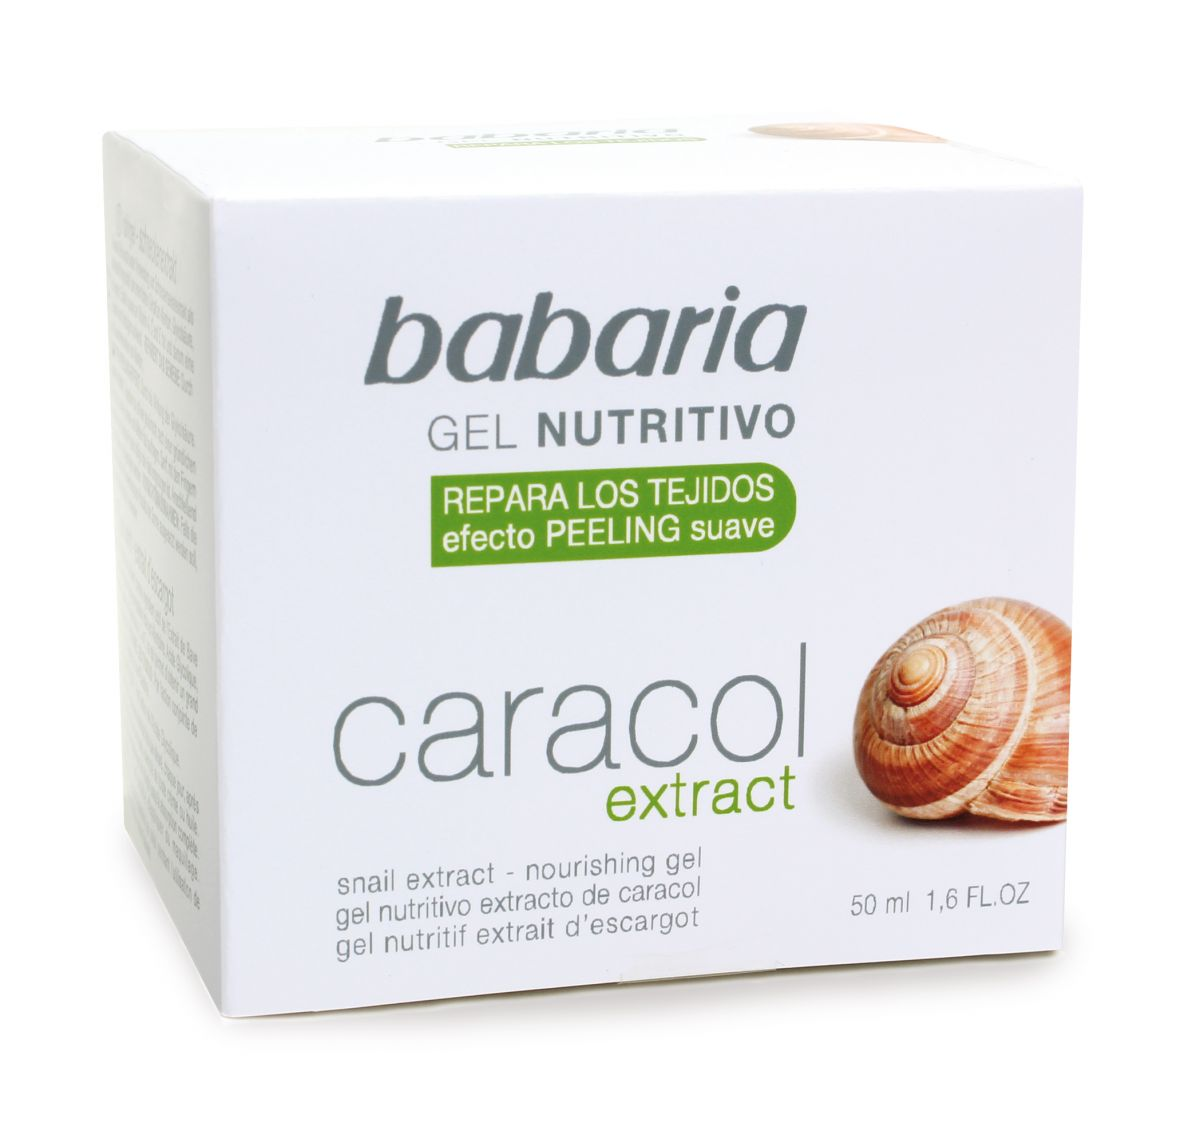 http://g-ua.org/babaria/uploads/attachments/2019/09/30/1569846801_31104_-_GEL_FACIAL_NUTRTIVO_CARACOL.jpg